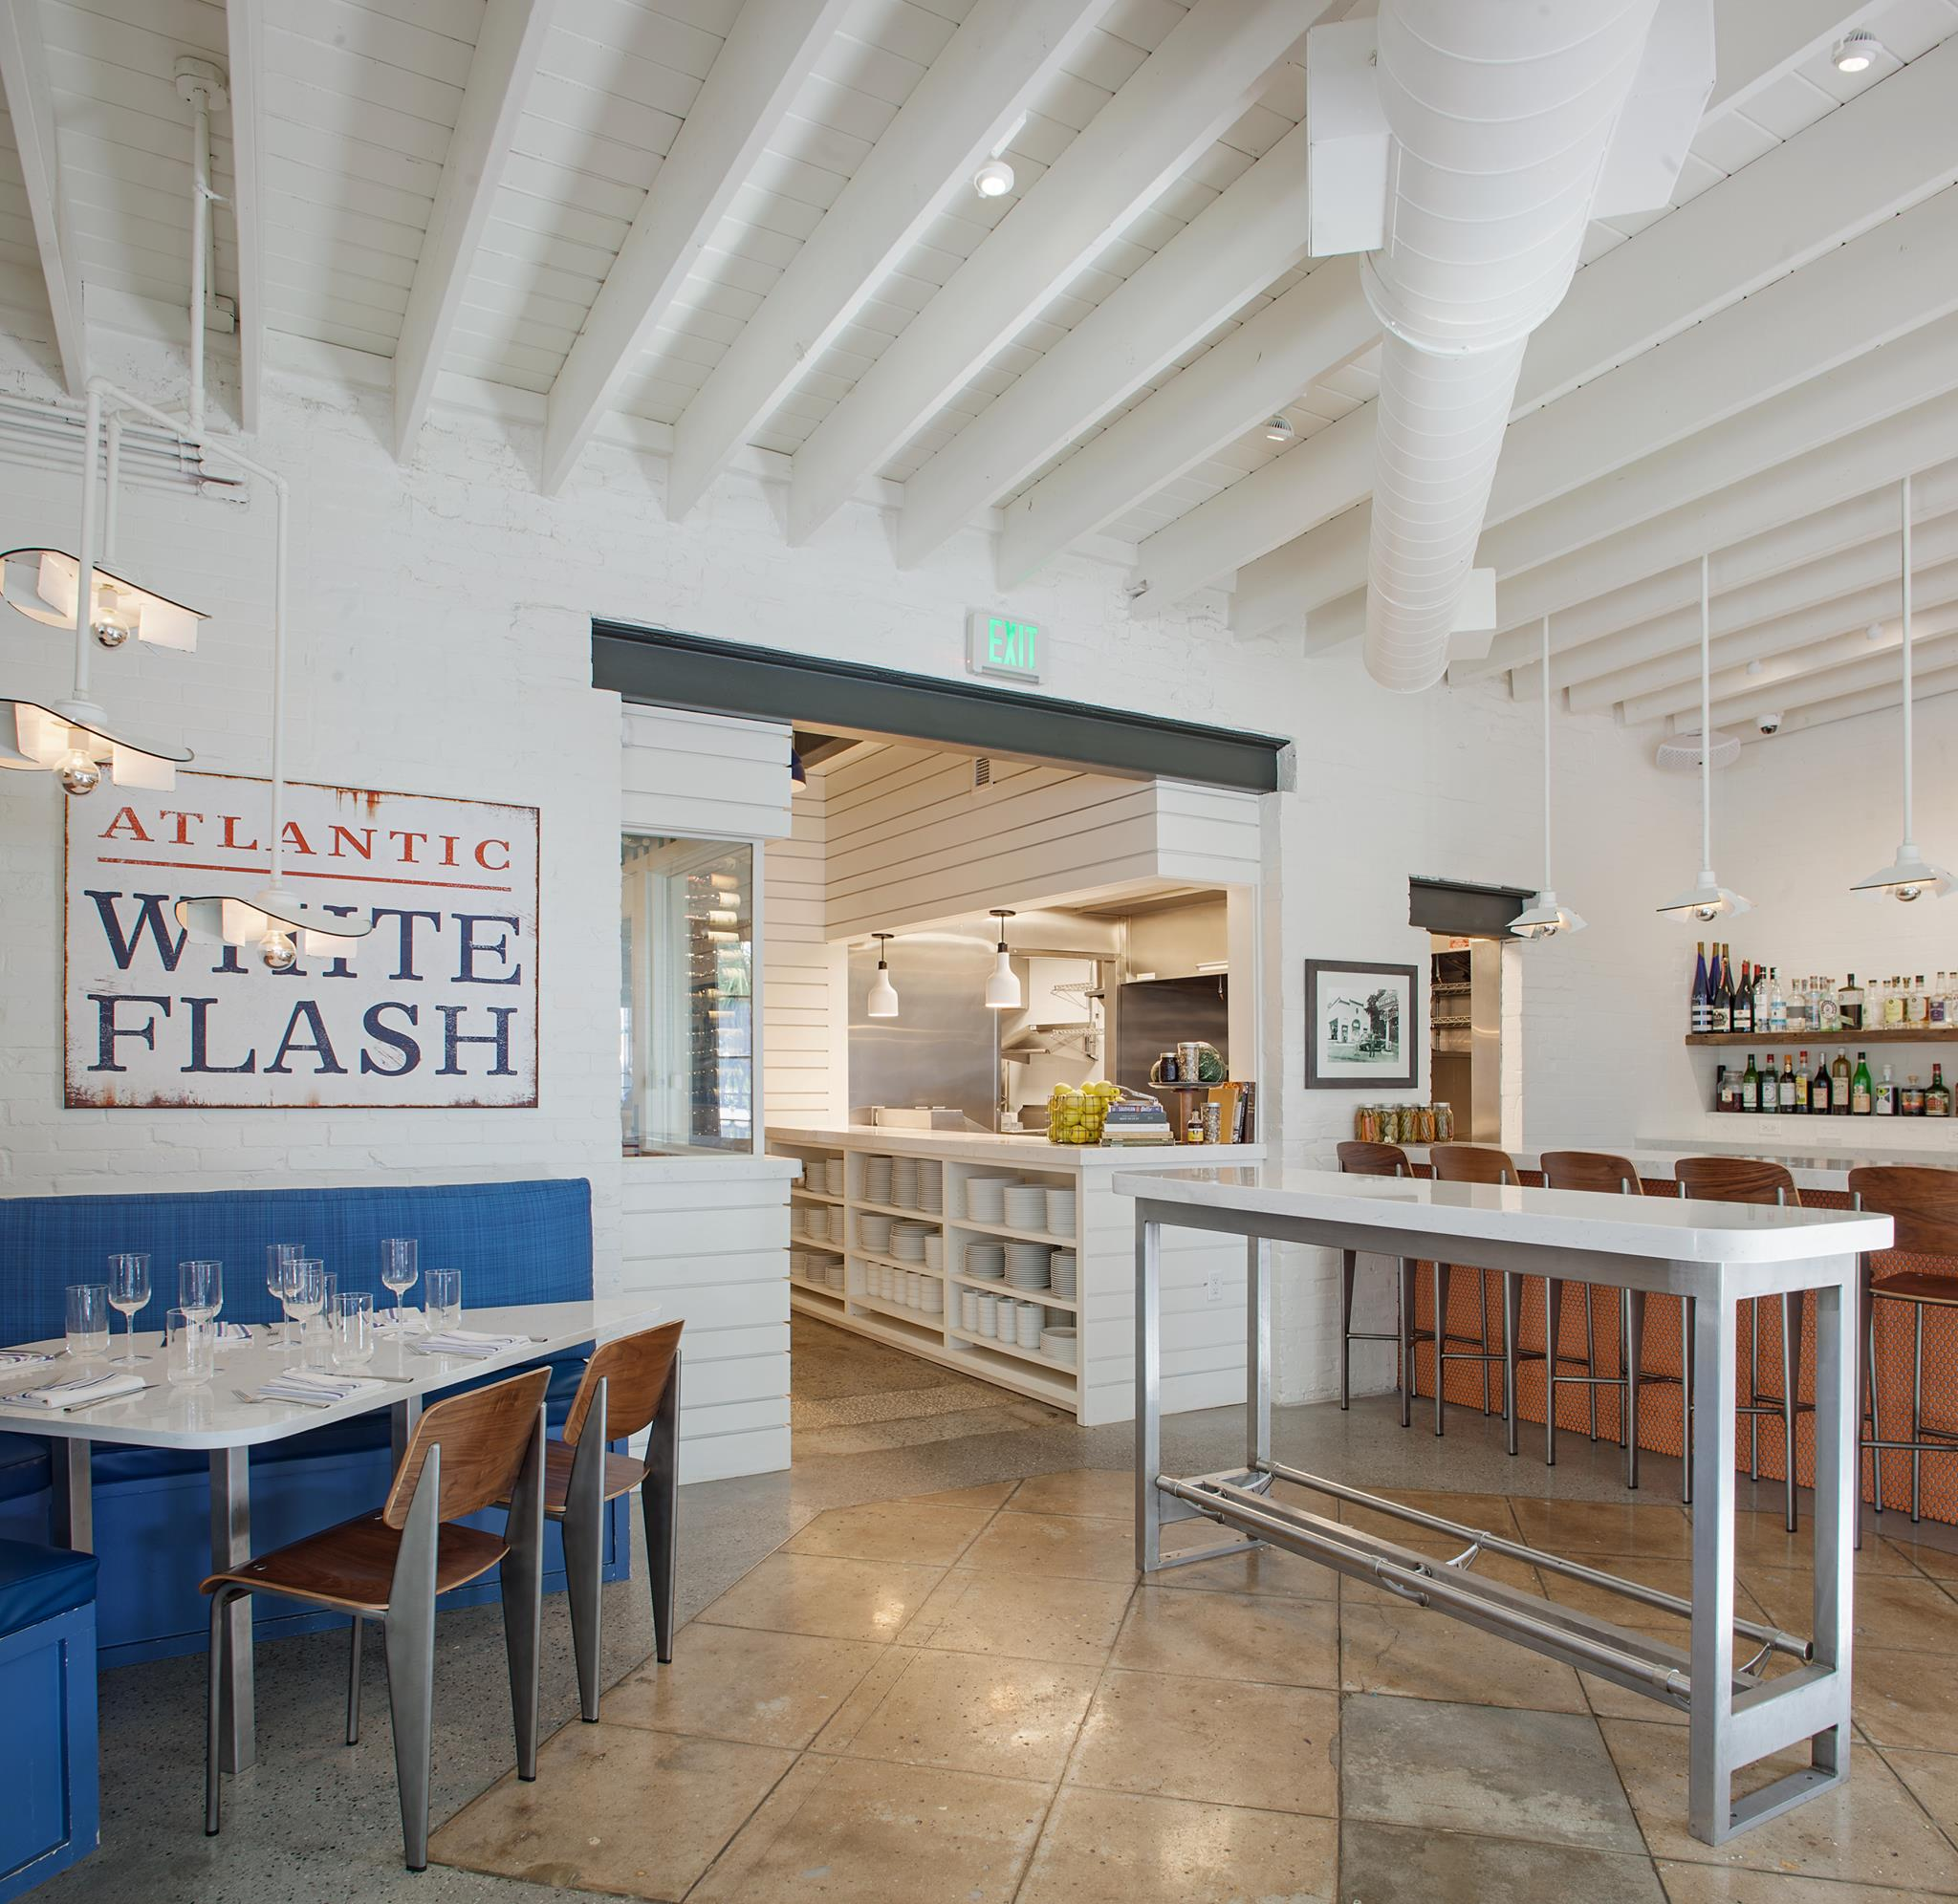 Atlantic - at Victory and Drayton in Savannah is a converted 1930's service station (photo courtesy Atlantic)